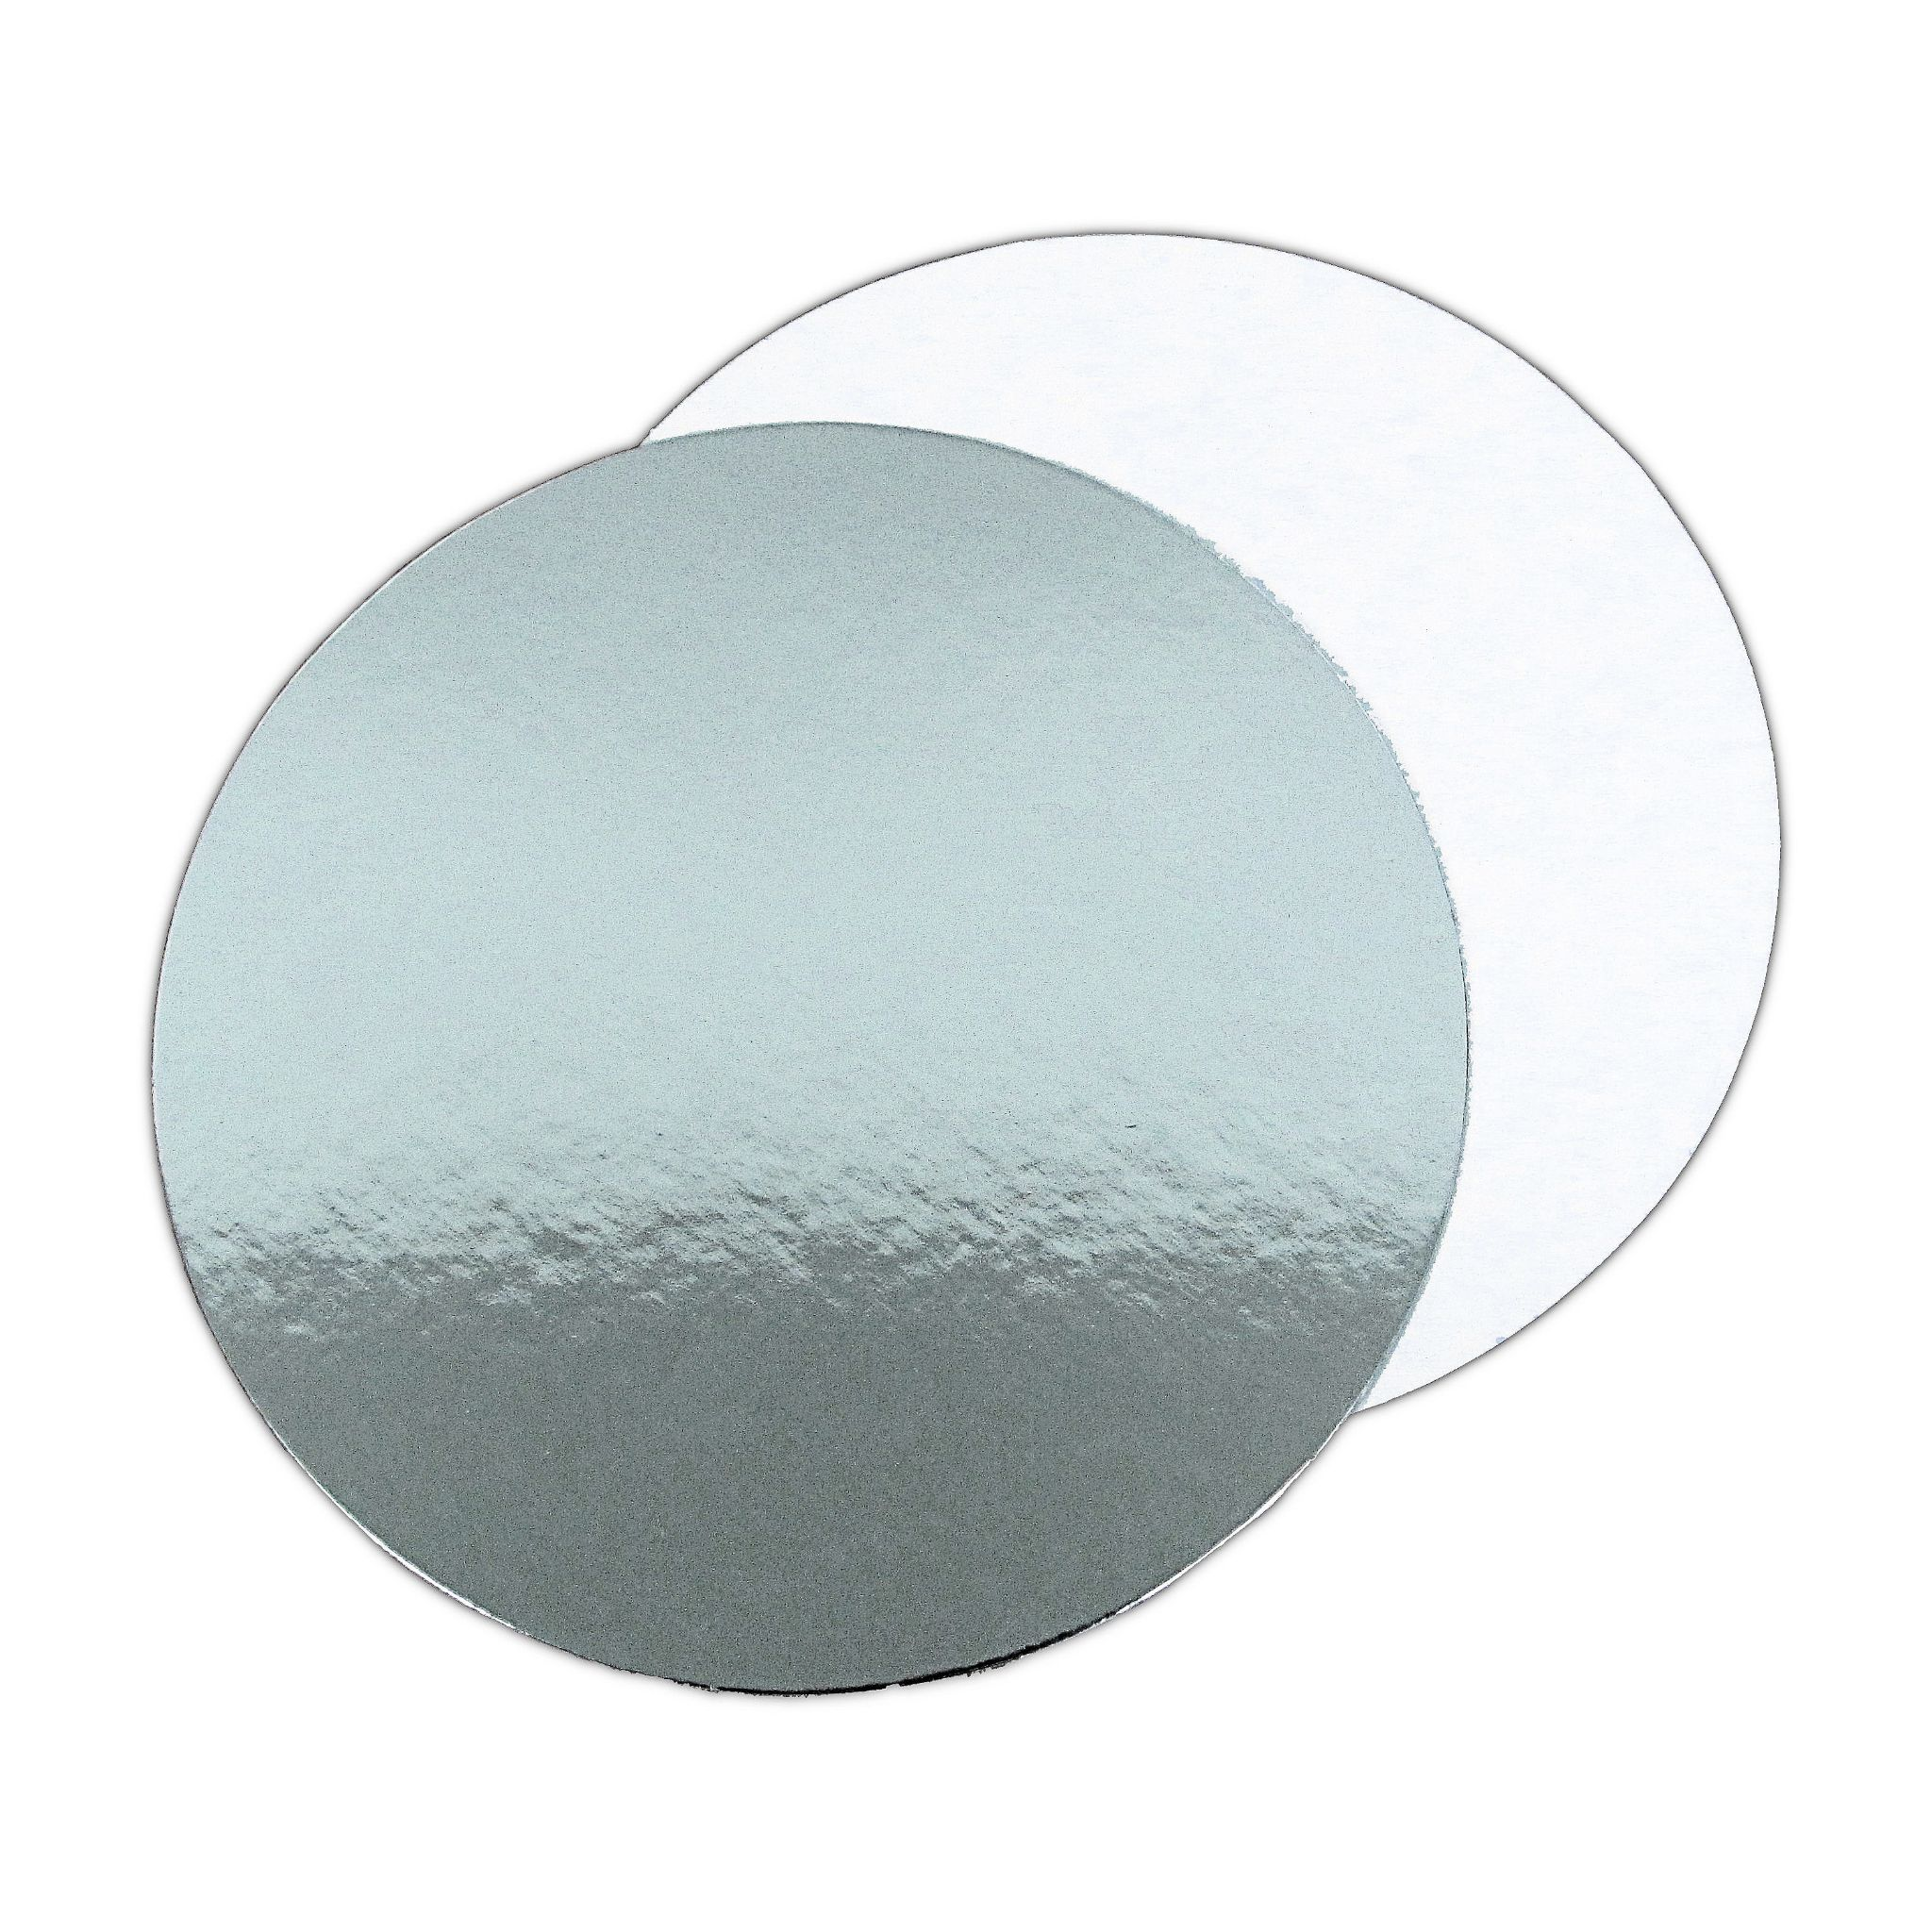 SCC14100 - 14'' Round Silver/White Cut Edge Cake Boards x 100